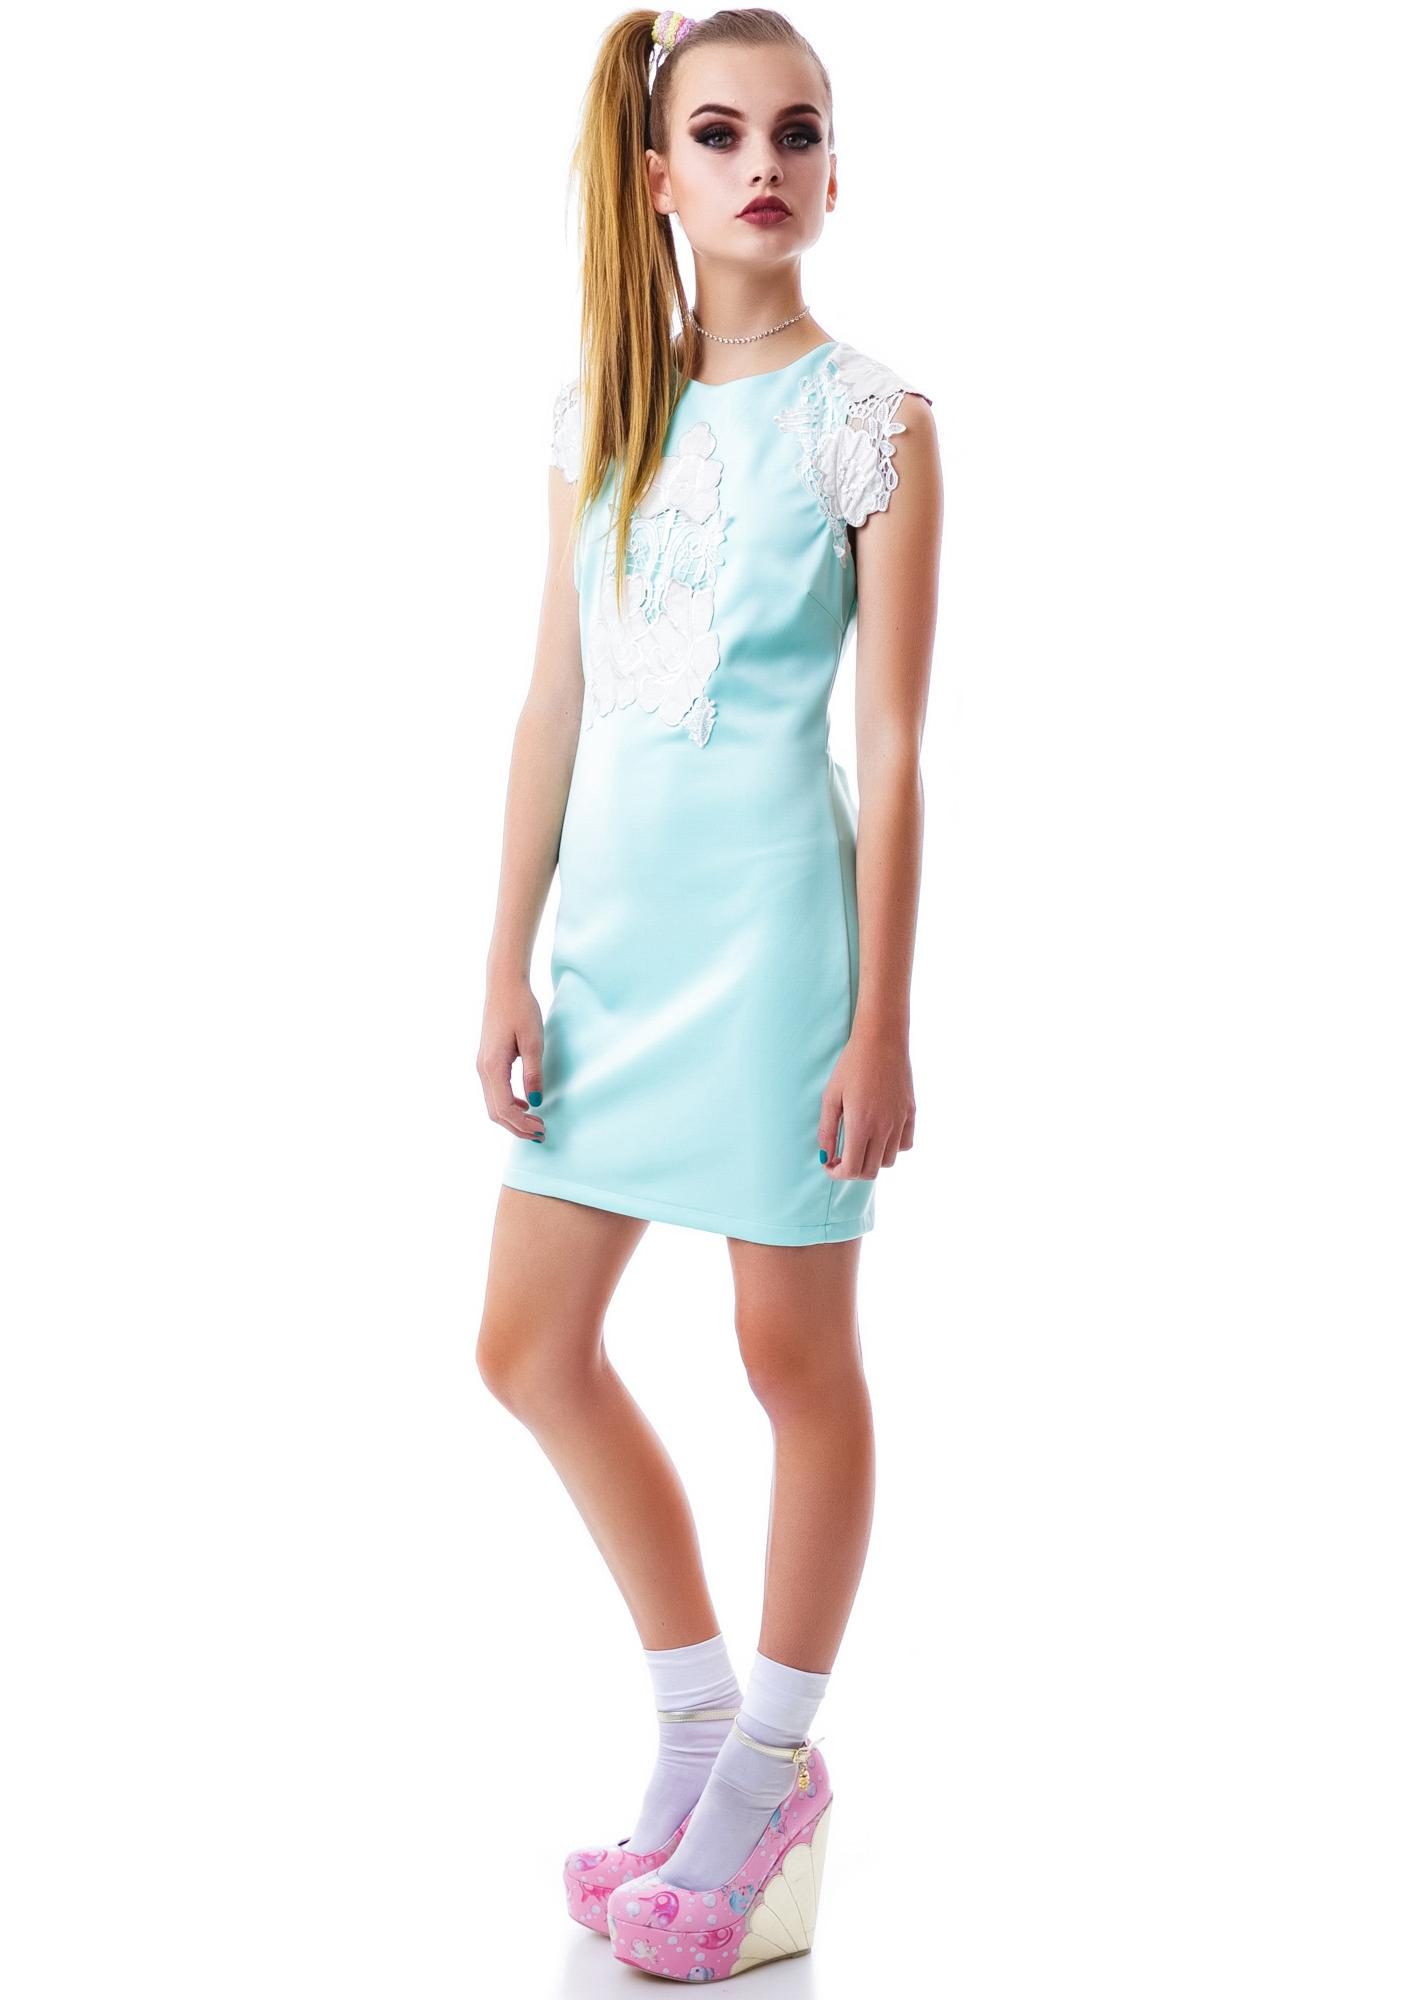 Poppy Plasma Pastel Dress